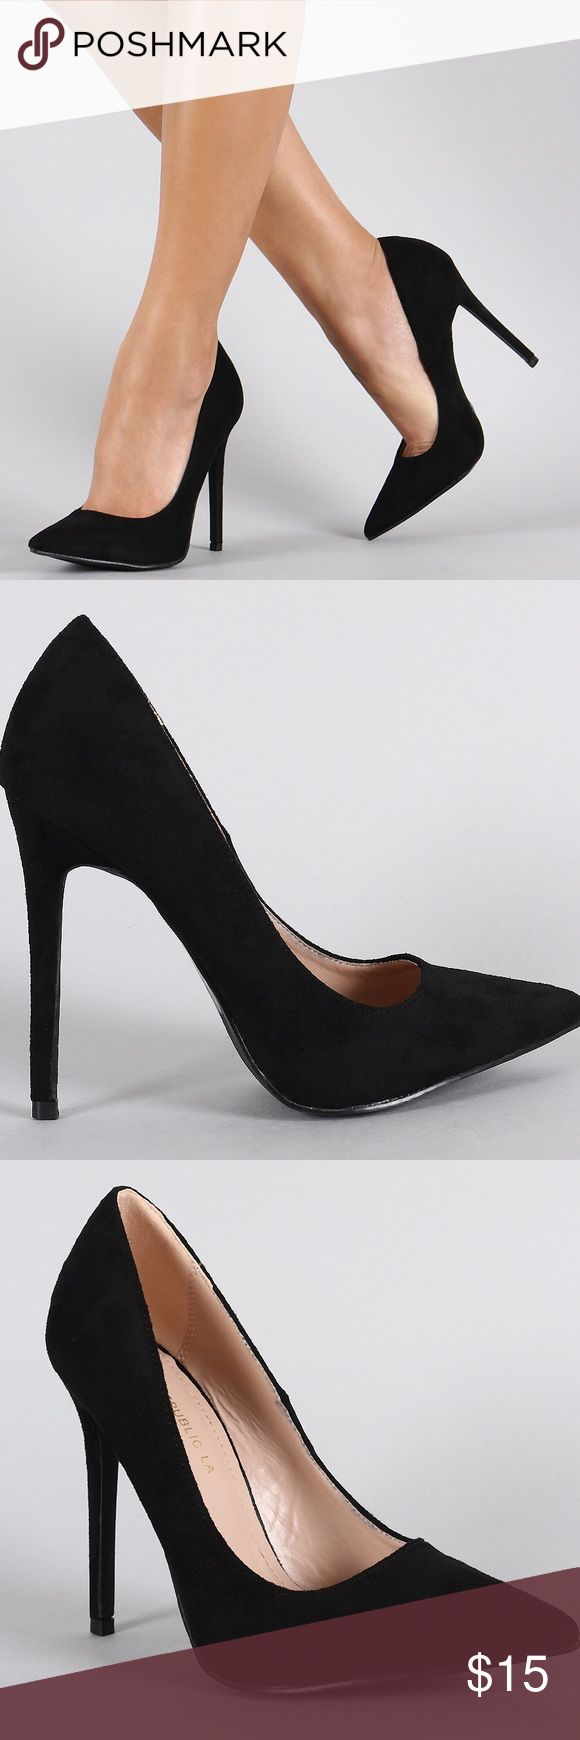 25+ best ideas about Stiletto Pumps on Pinterest ...